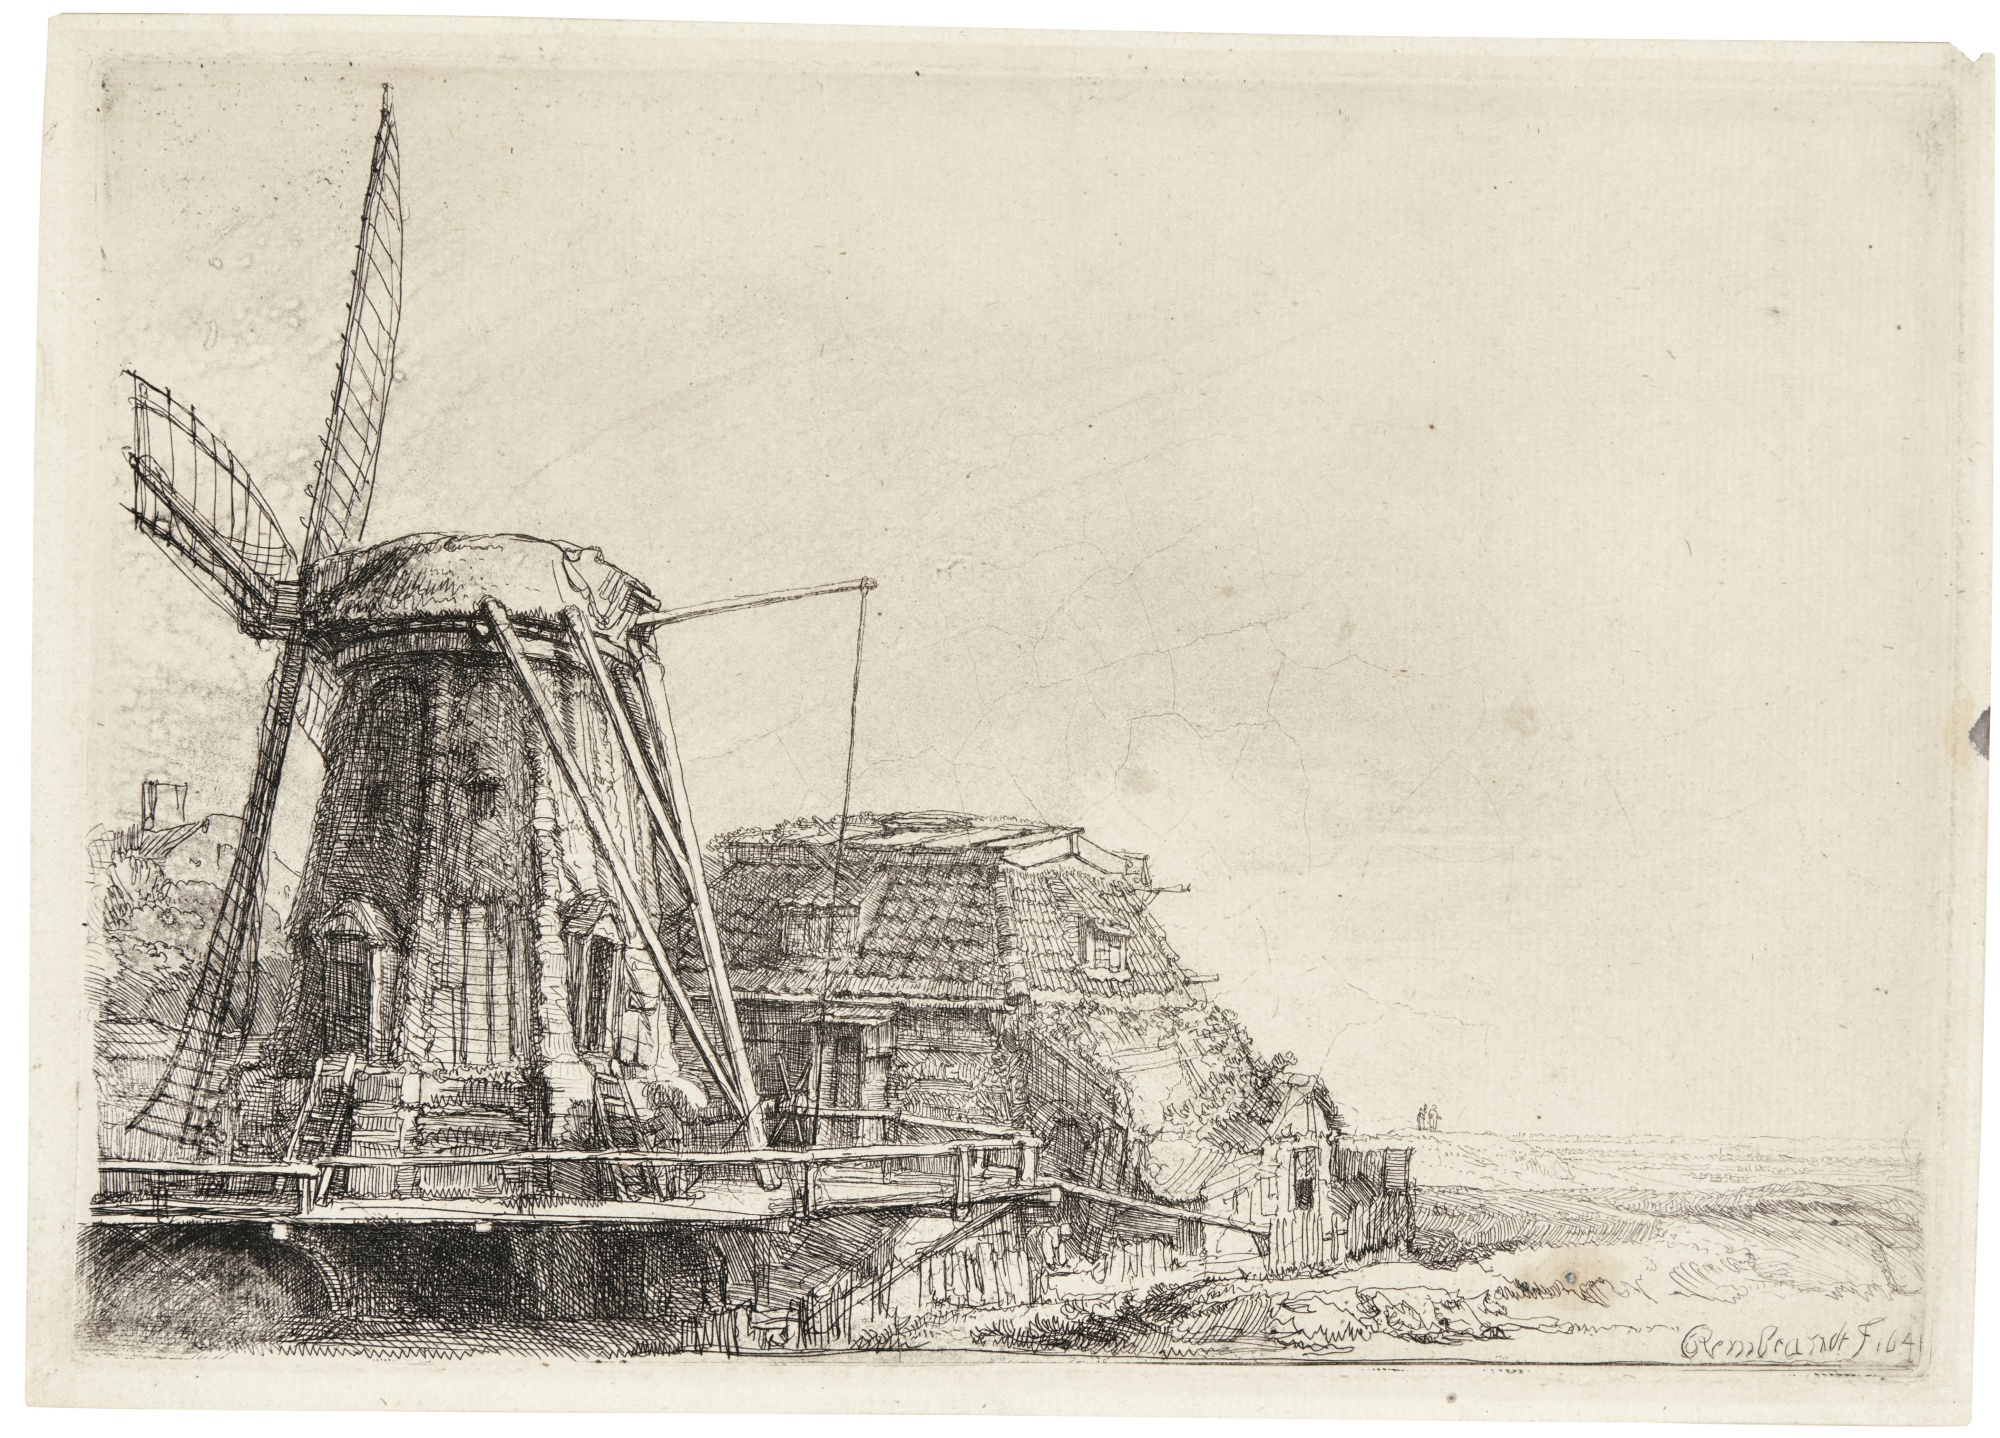 Rembrandt van Rijn-The Windmill (B., Holl. 233; New Holl. 200; H. 179)-1641